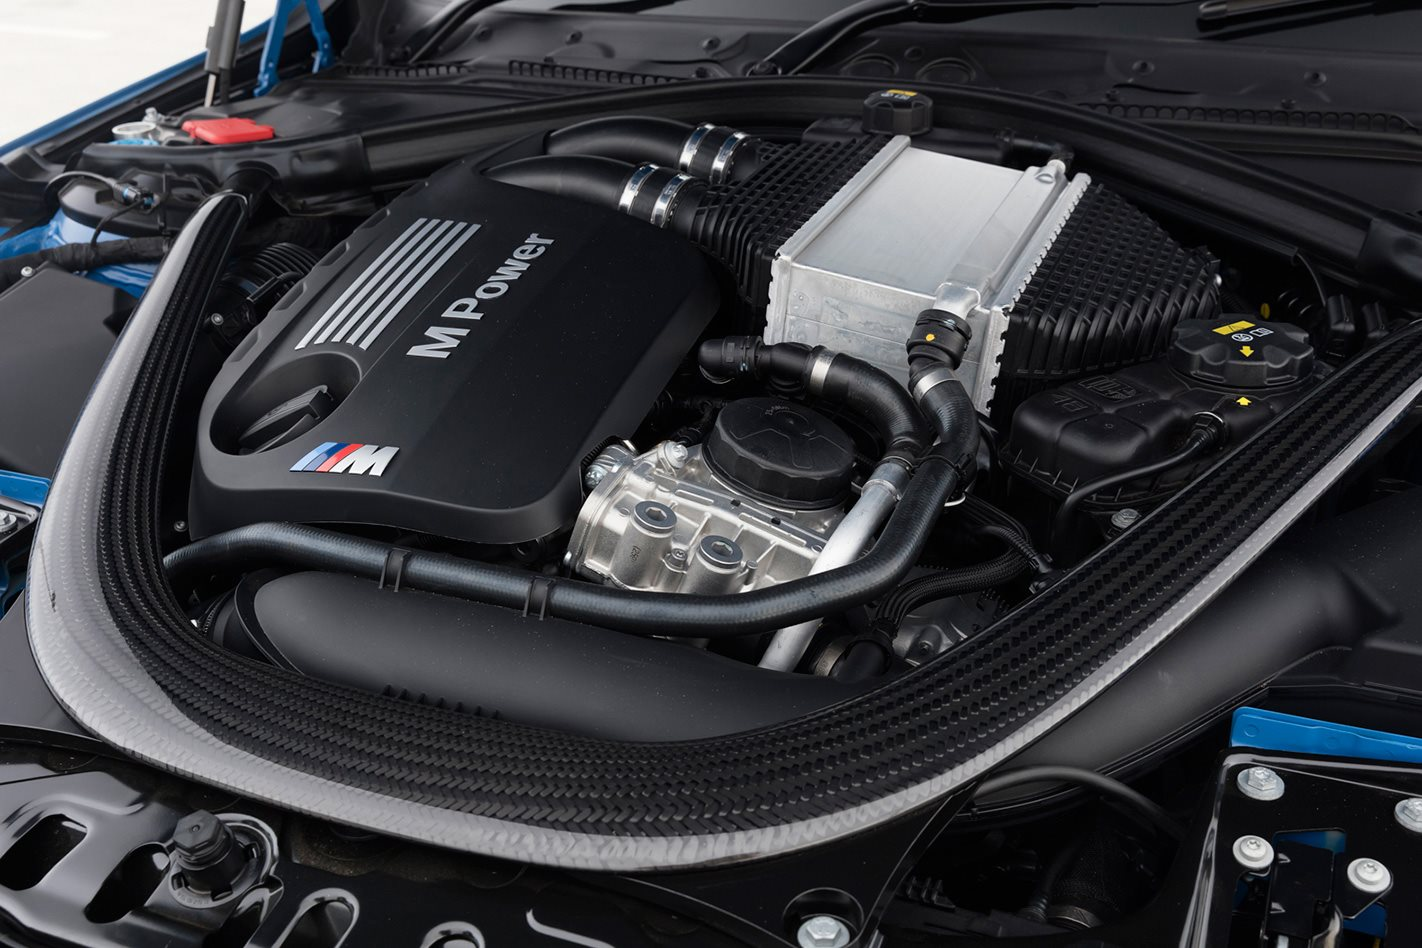 2017 BMW M3 engine